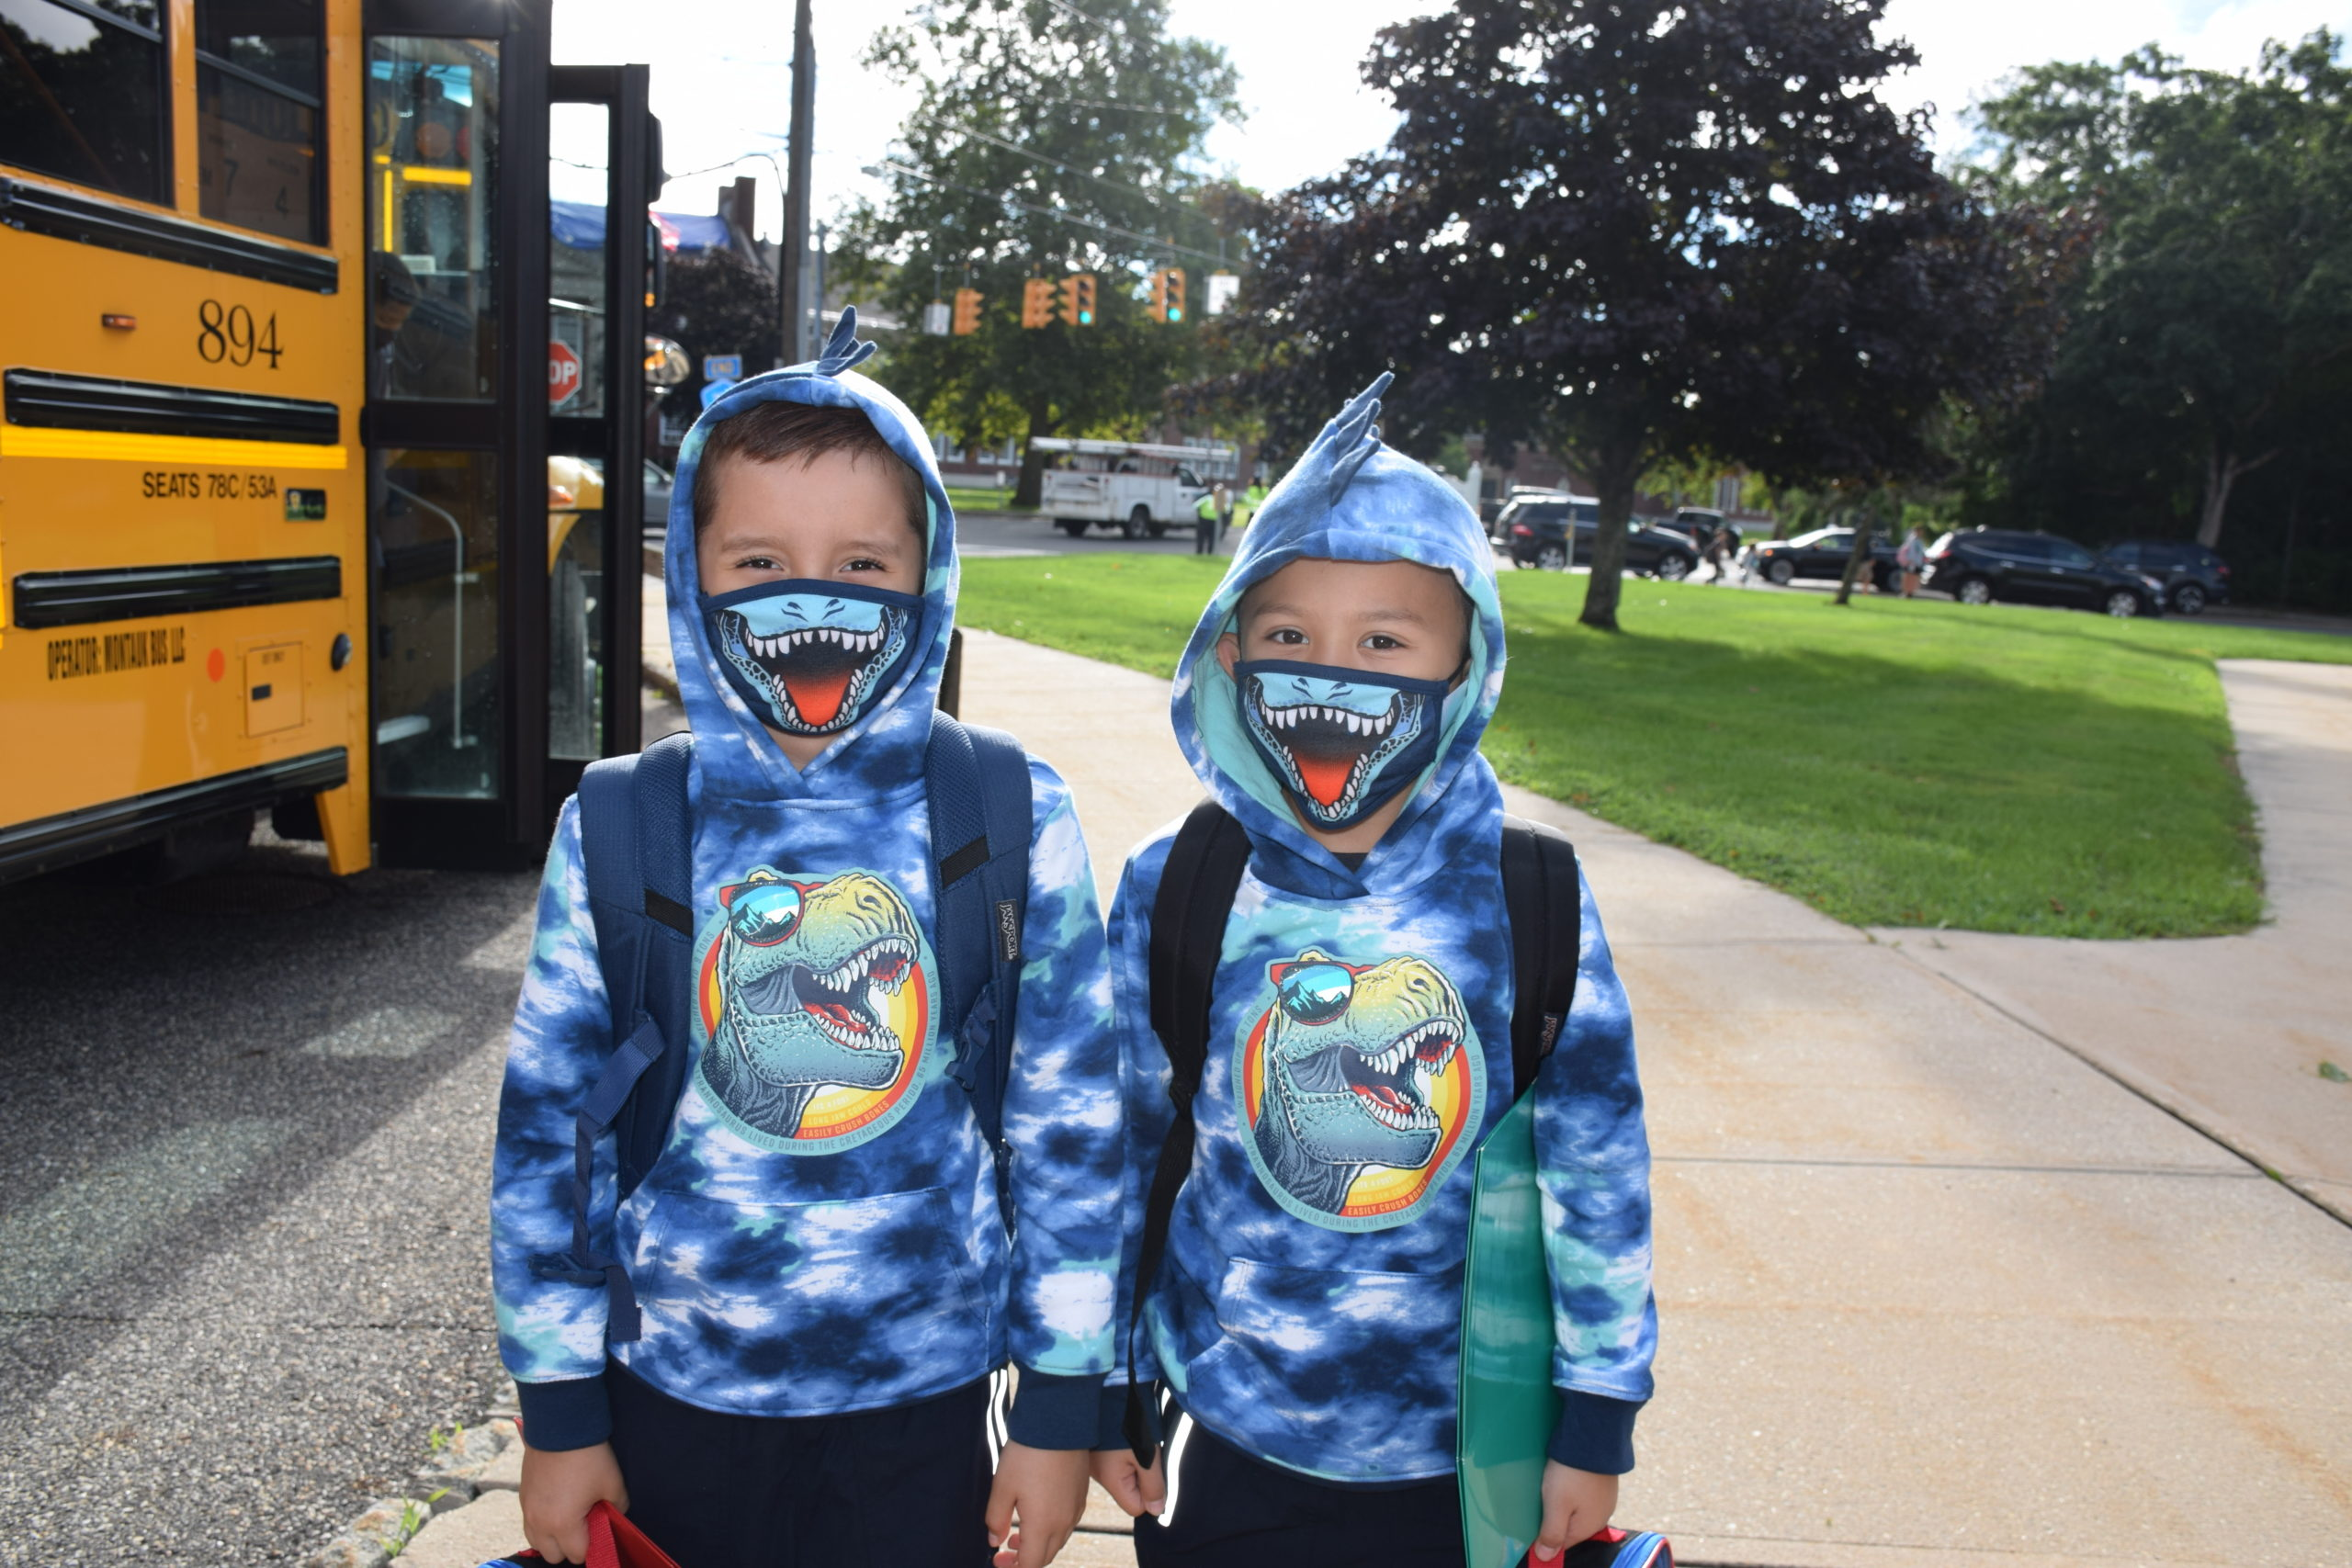 Westhampton Beach Elementary School students were all smiles as they arrived for their first day of school on September 2.